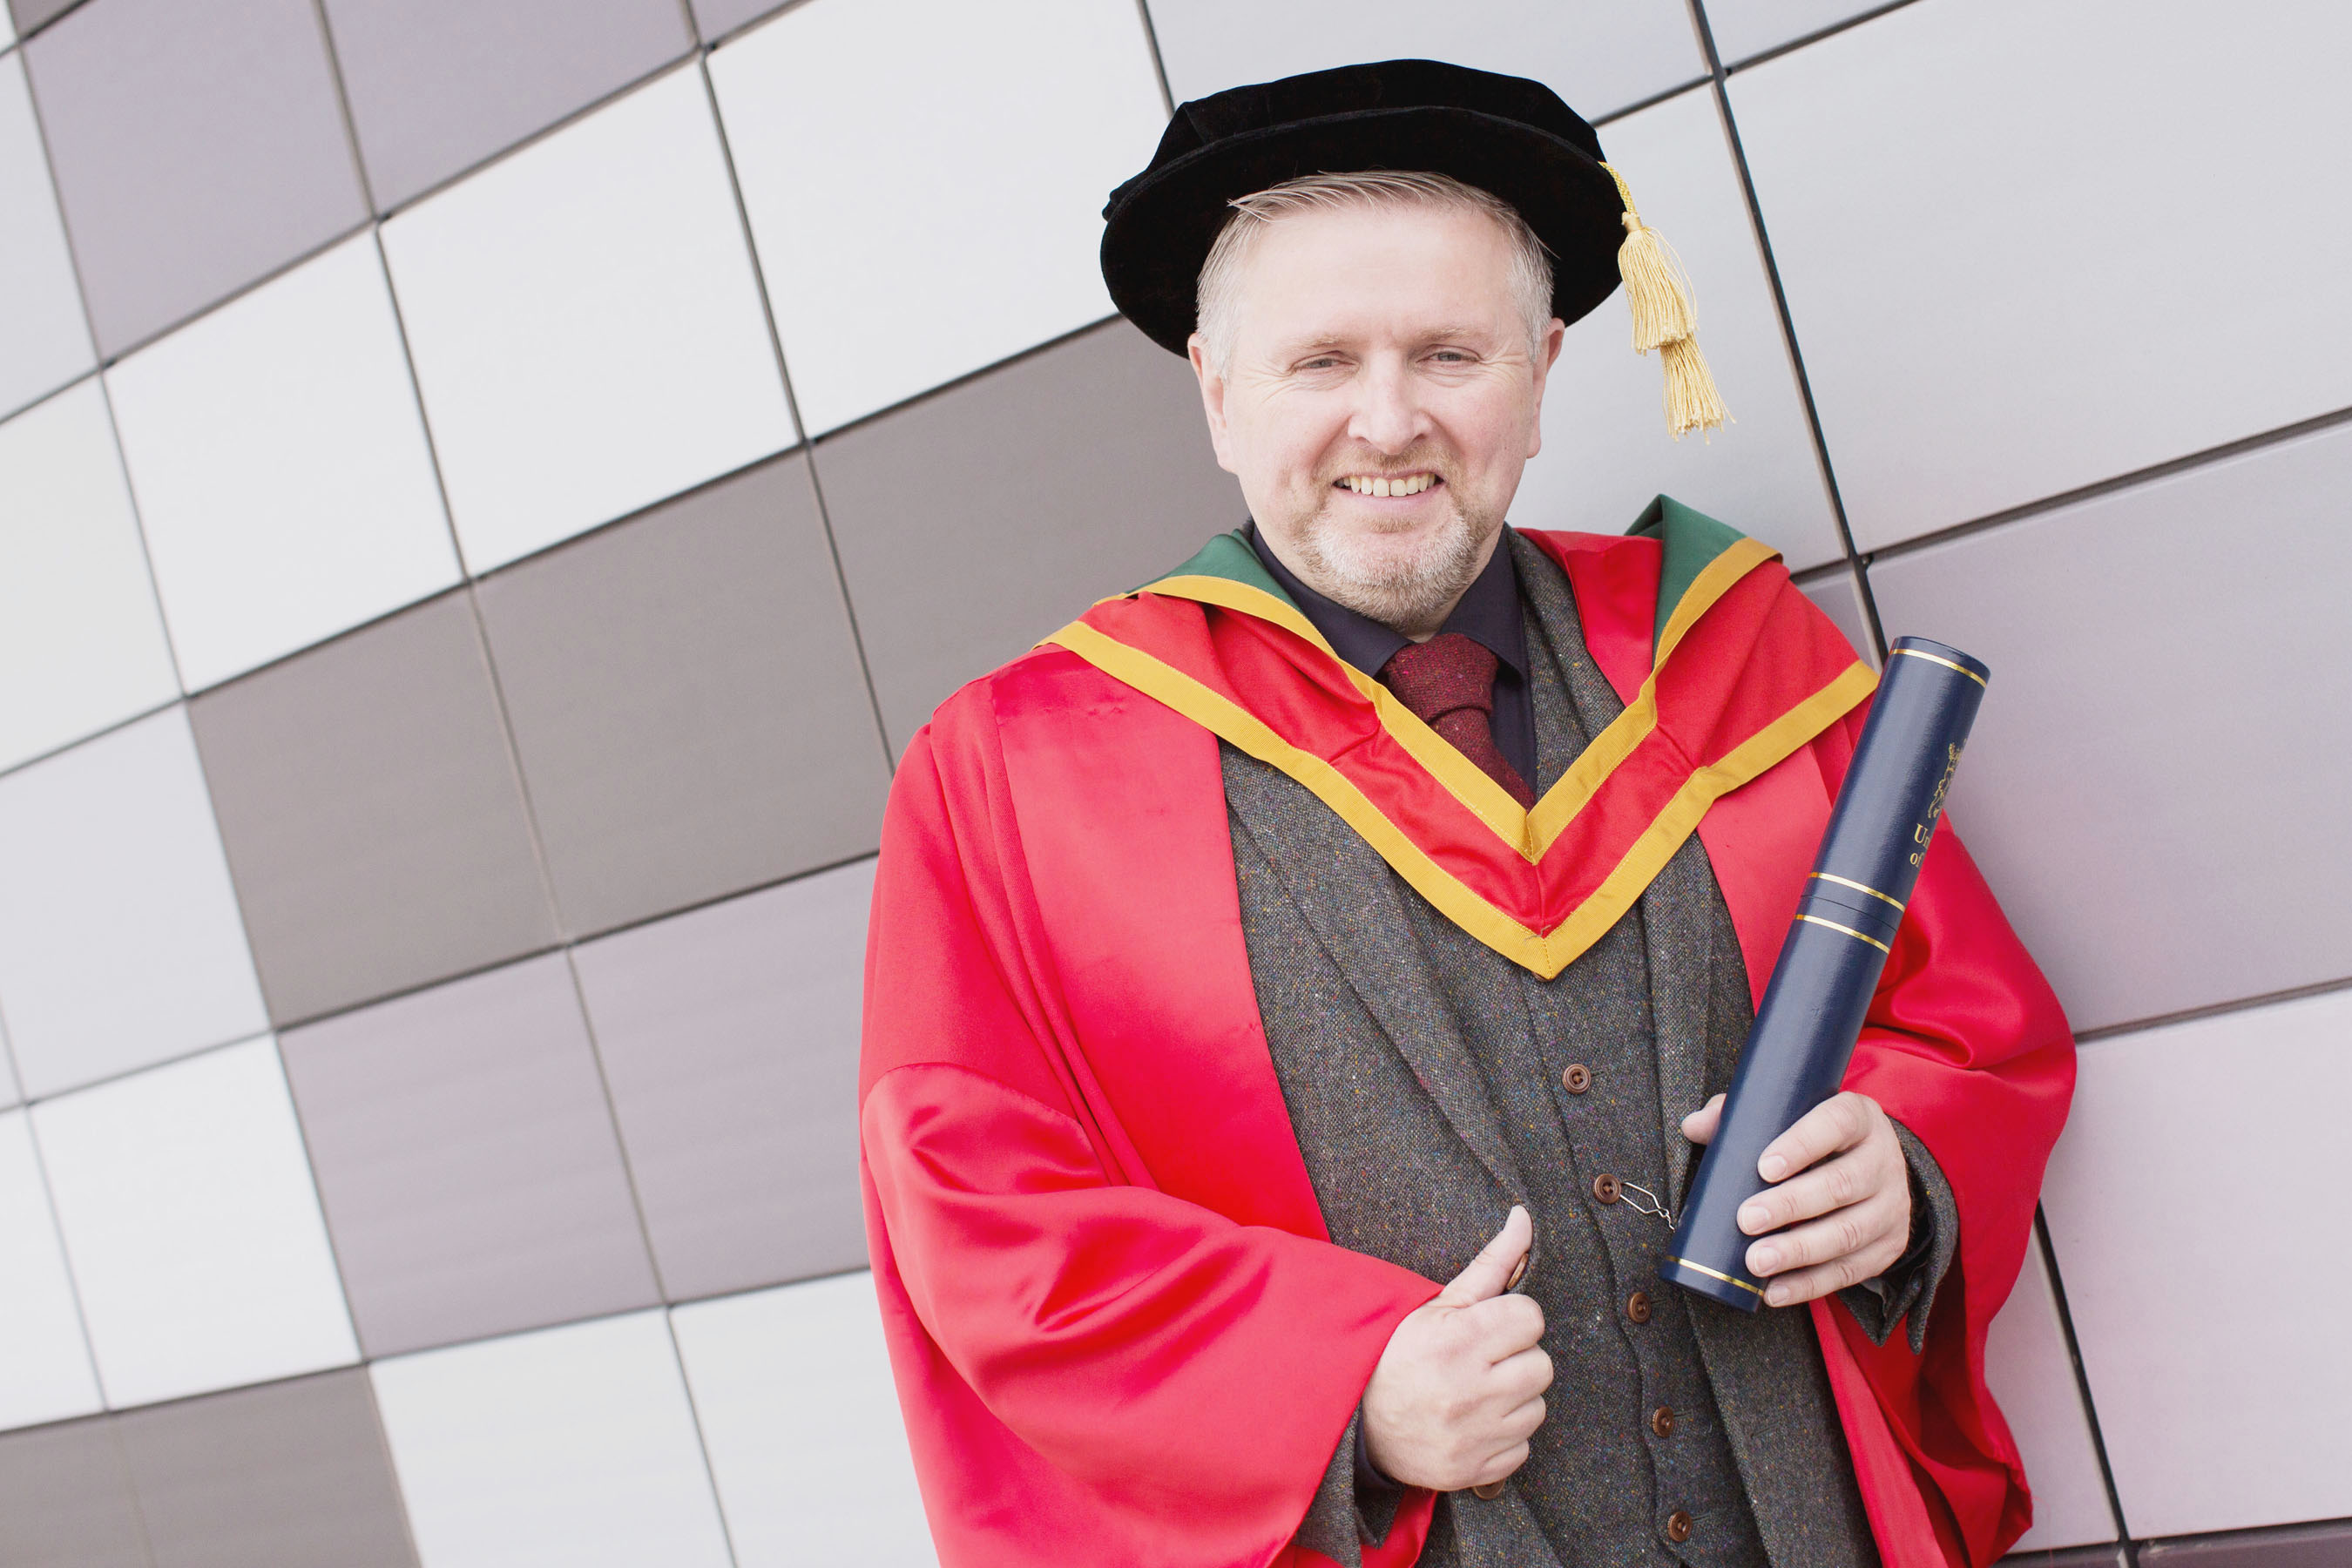 Passionist priest, Fr Gary Donegan, received the honorary degree of Doctor of Laws (LLD) for his outstanding community work within Northern Ireland. (Photo: Nigel McDowell/Ulster University)